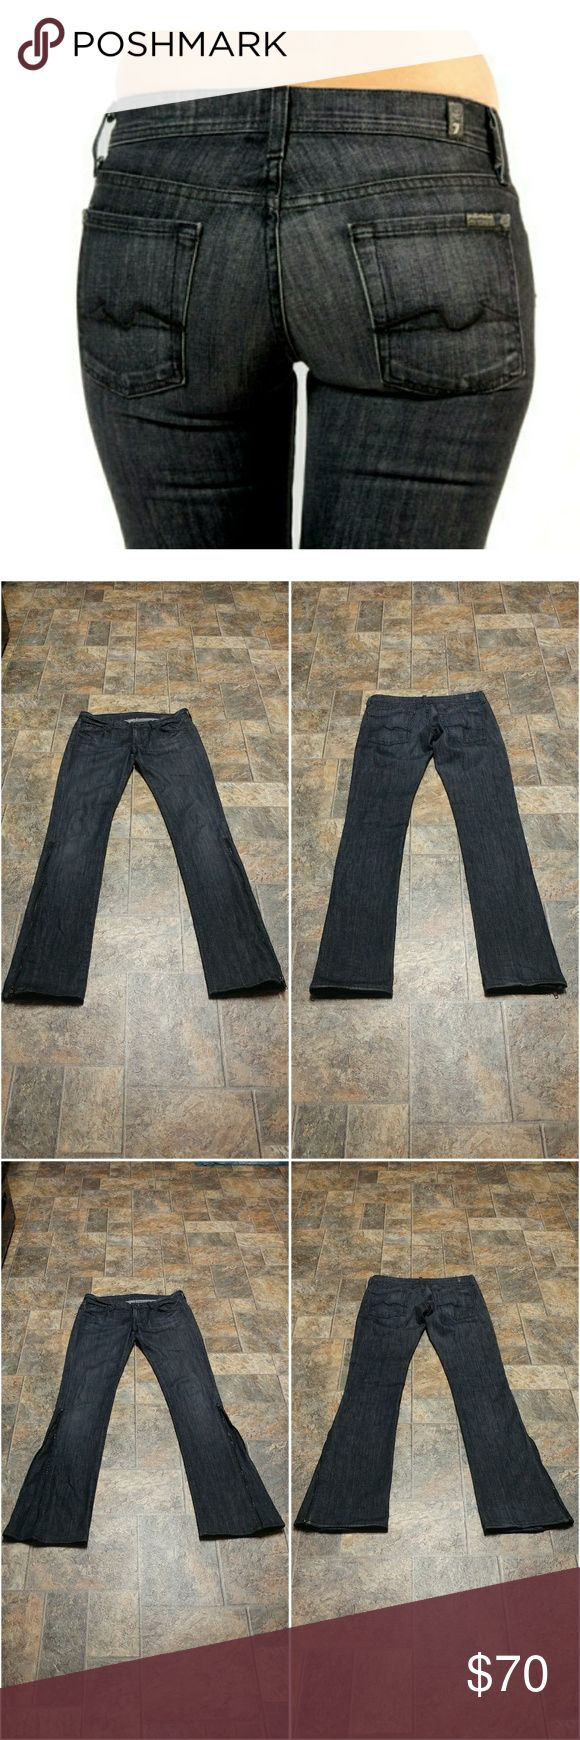 """7 for all mankind Flare 7 for all mankind size 27 and 35"""" unaltered inseam (hard to find) straight leg with side zippers to convert to flare. The flare in Port Lions, famous black squiggle line on back pockets. In great preowned condition. Waist flat is 15 1/2"""" and rise is 7 1/2"""" 7 For All Mankind Jeans Flare & Wide Leg"""